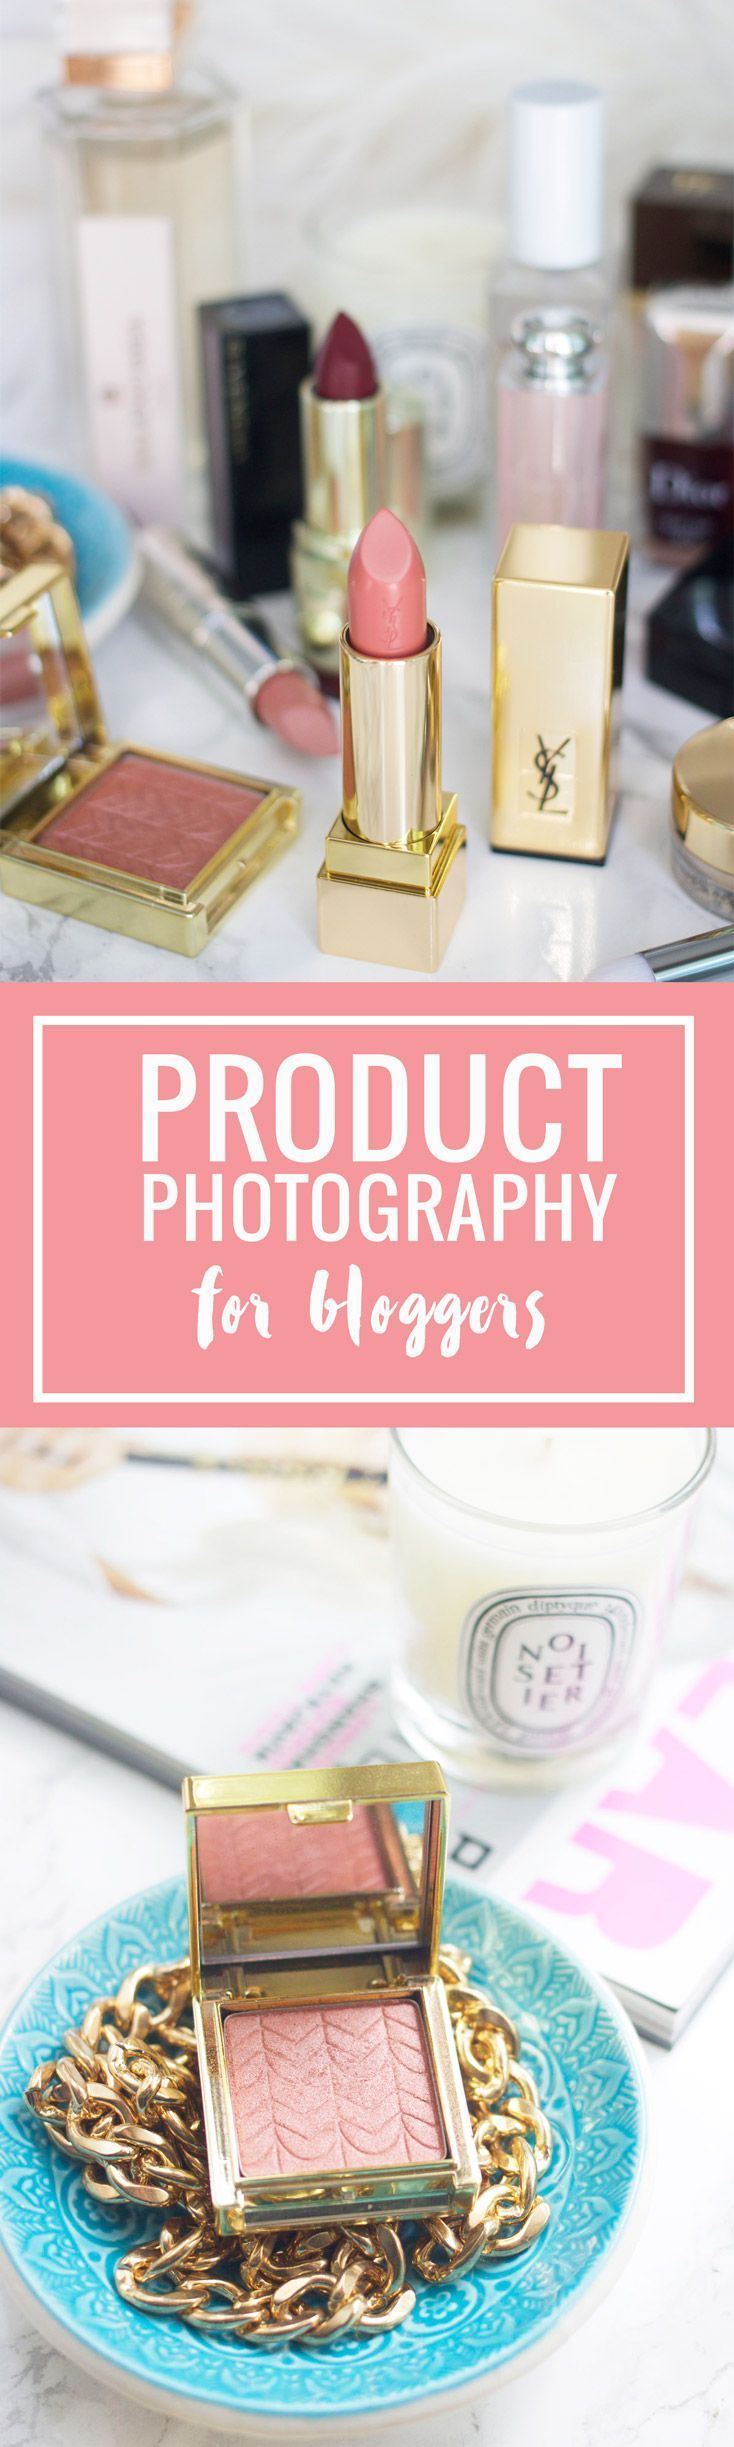 Product photography tips for bloggers